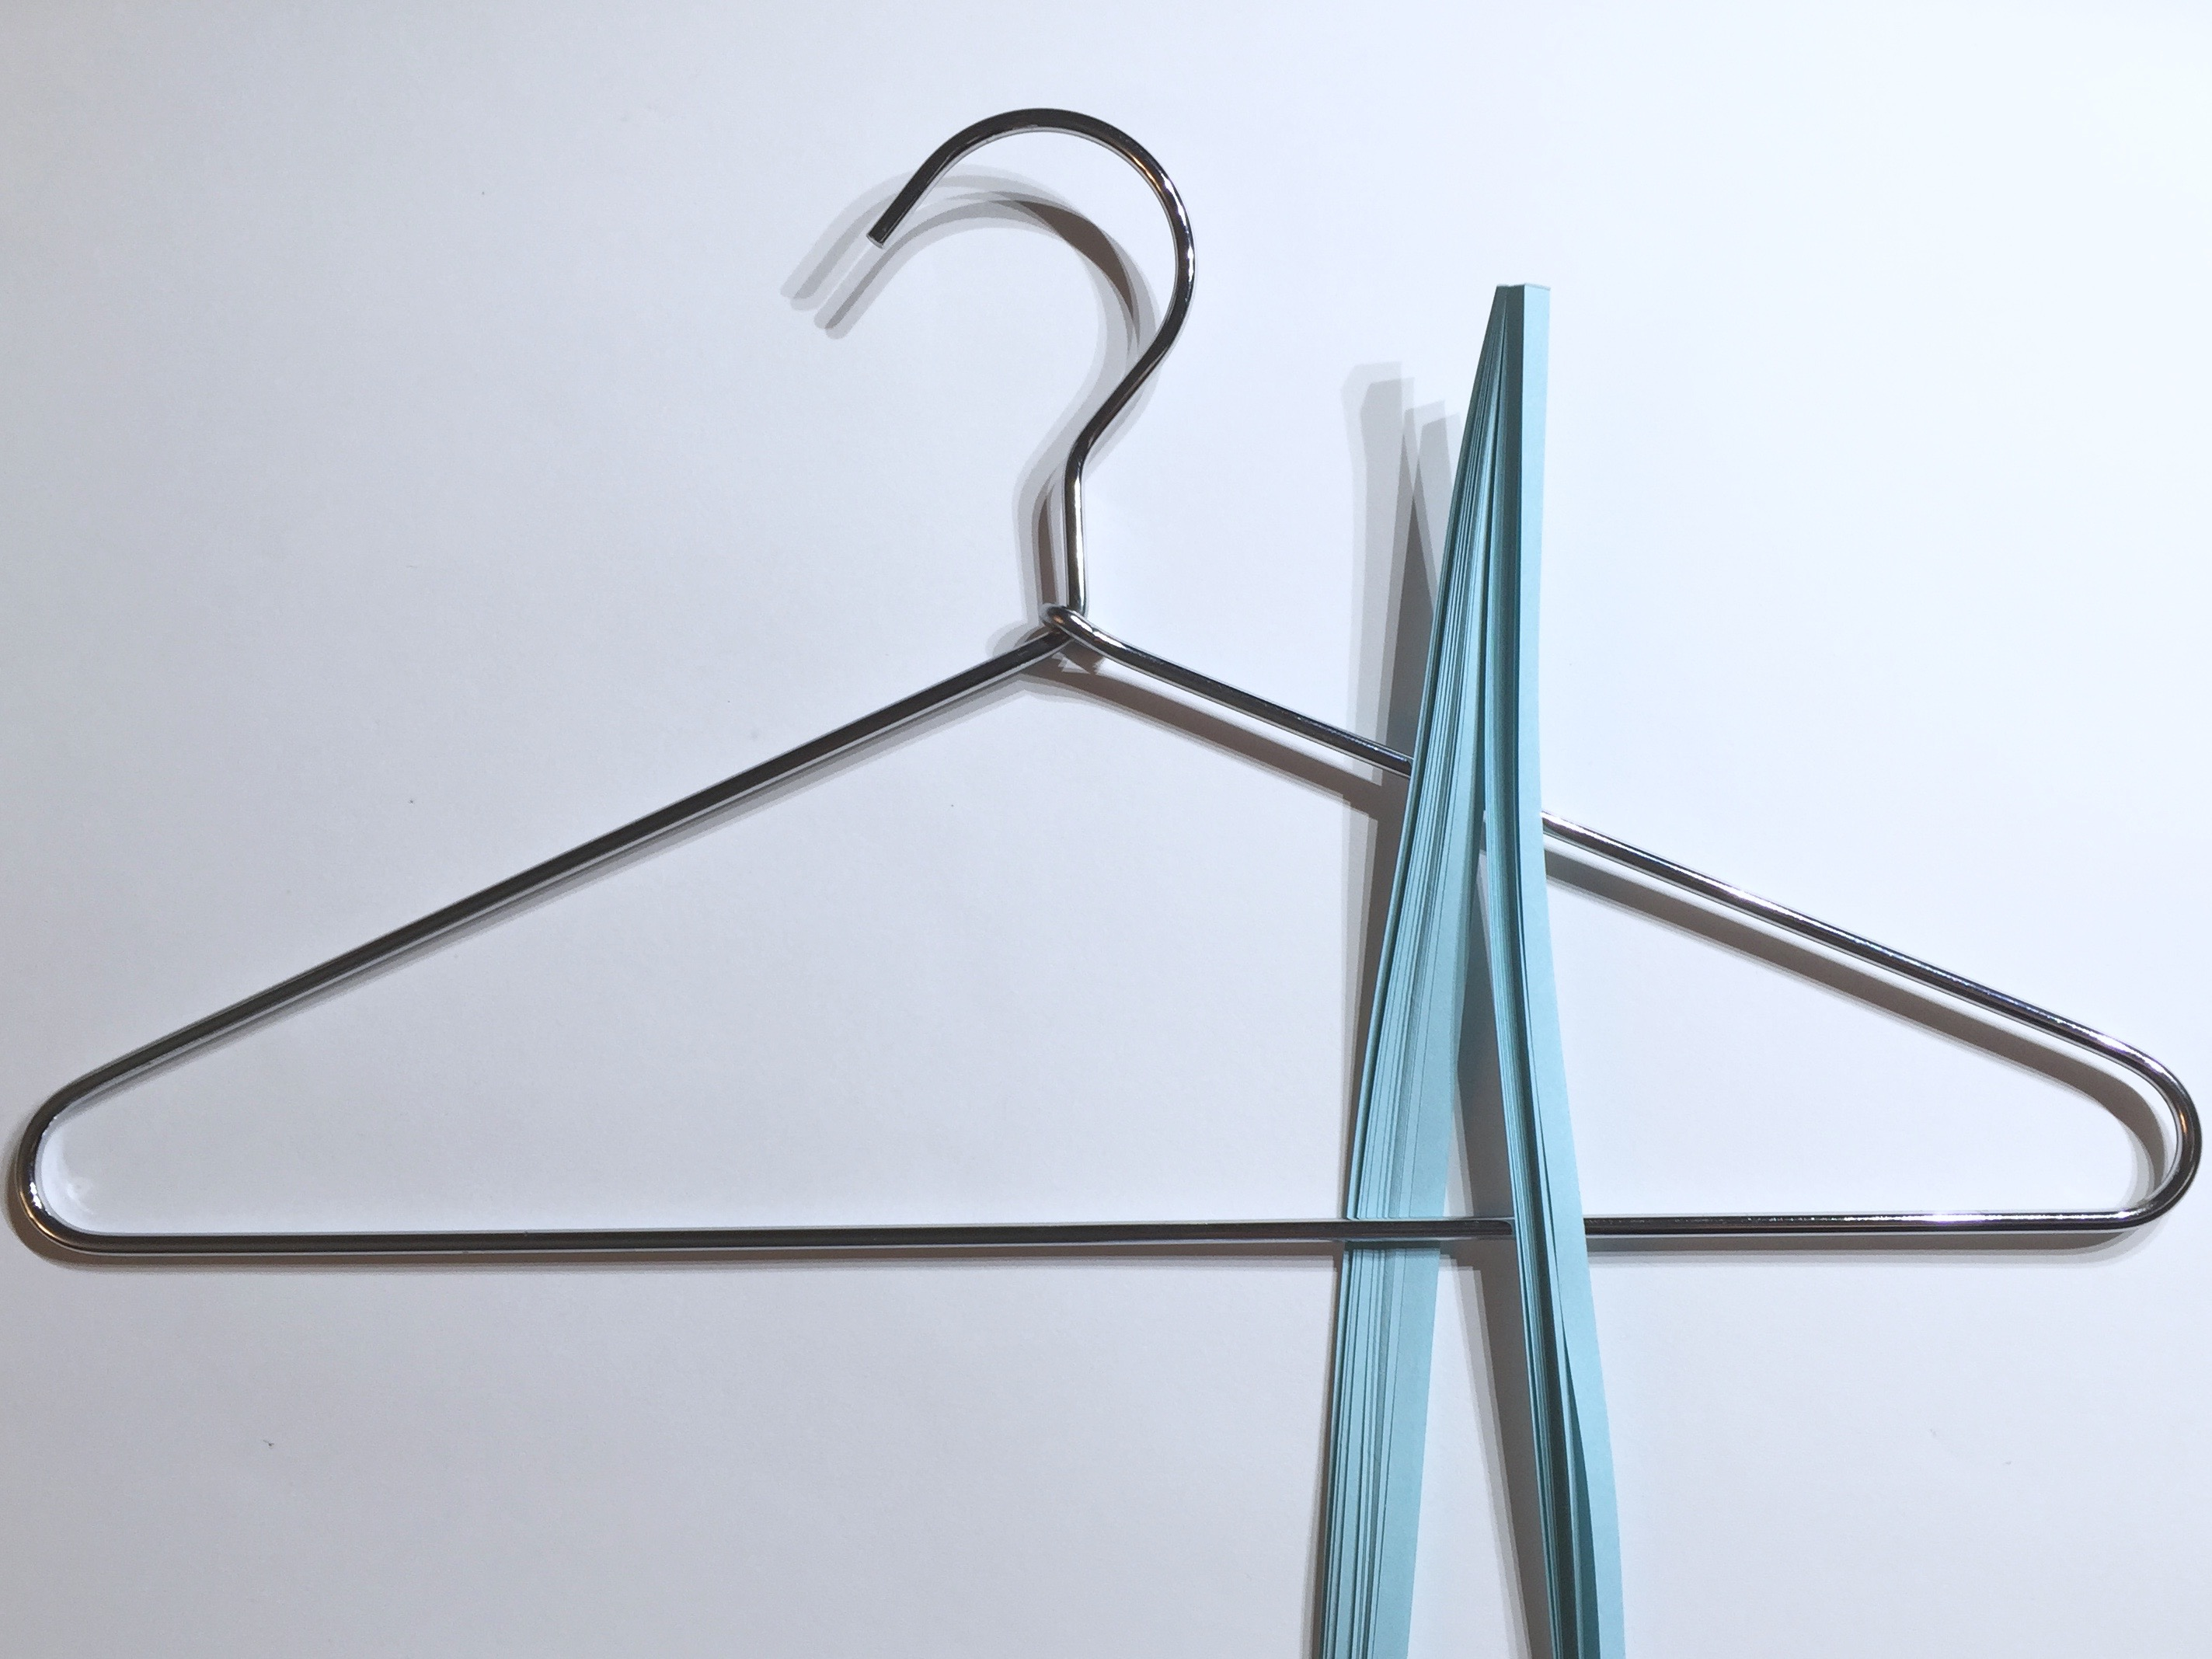 Image of draping quilling paper over a hanger